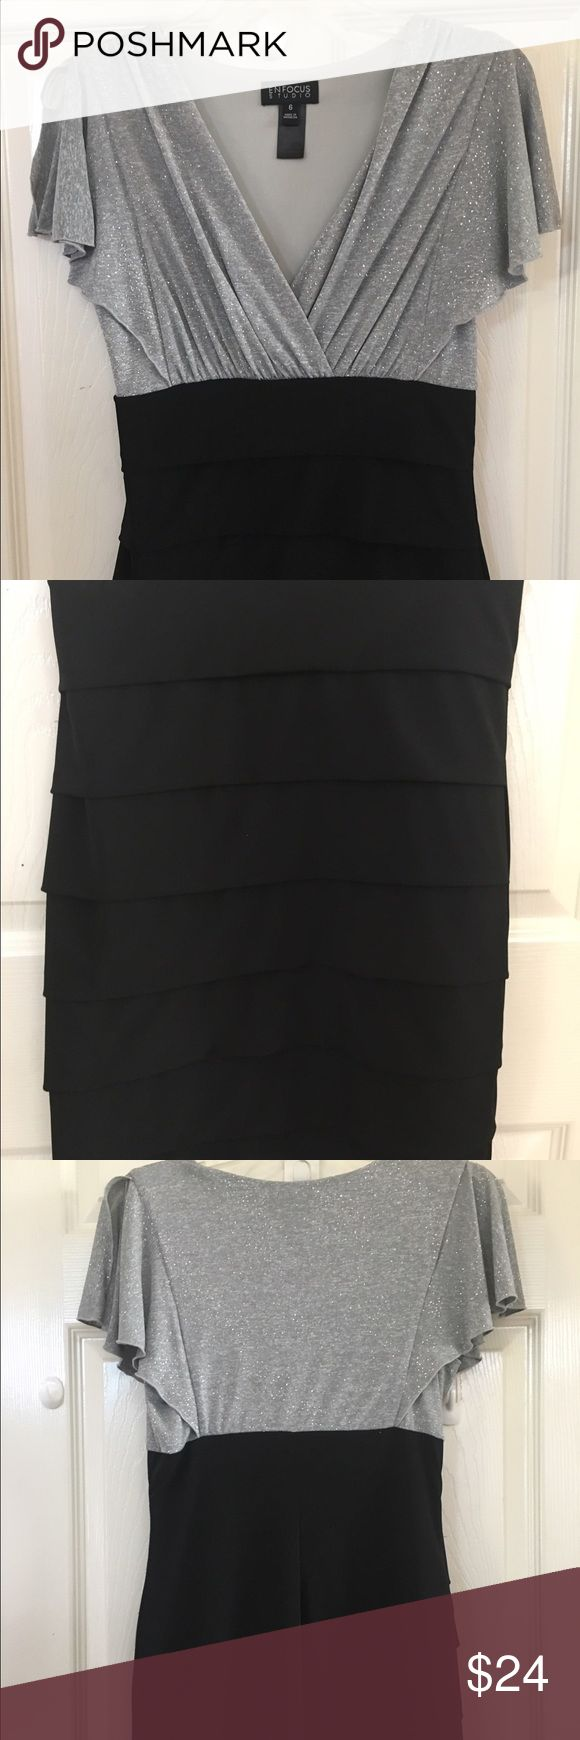 """NWOT snug fit party holiday dress Sparkle on top low cut black snug fitting skirt, the perfect length. Size 6 or medium polyester 94% spandex 6% In excellent condition! Dress is 36"""" from shoulder to bottom Enfocus Studio Dresses Midi"""